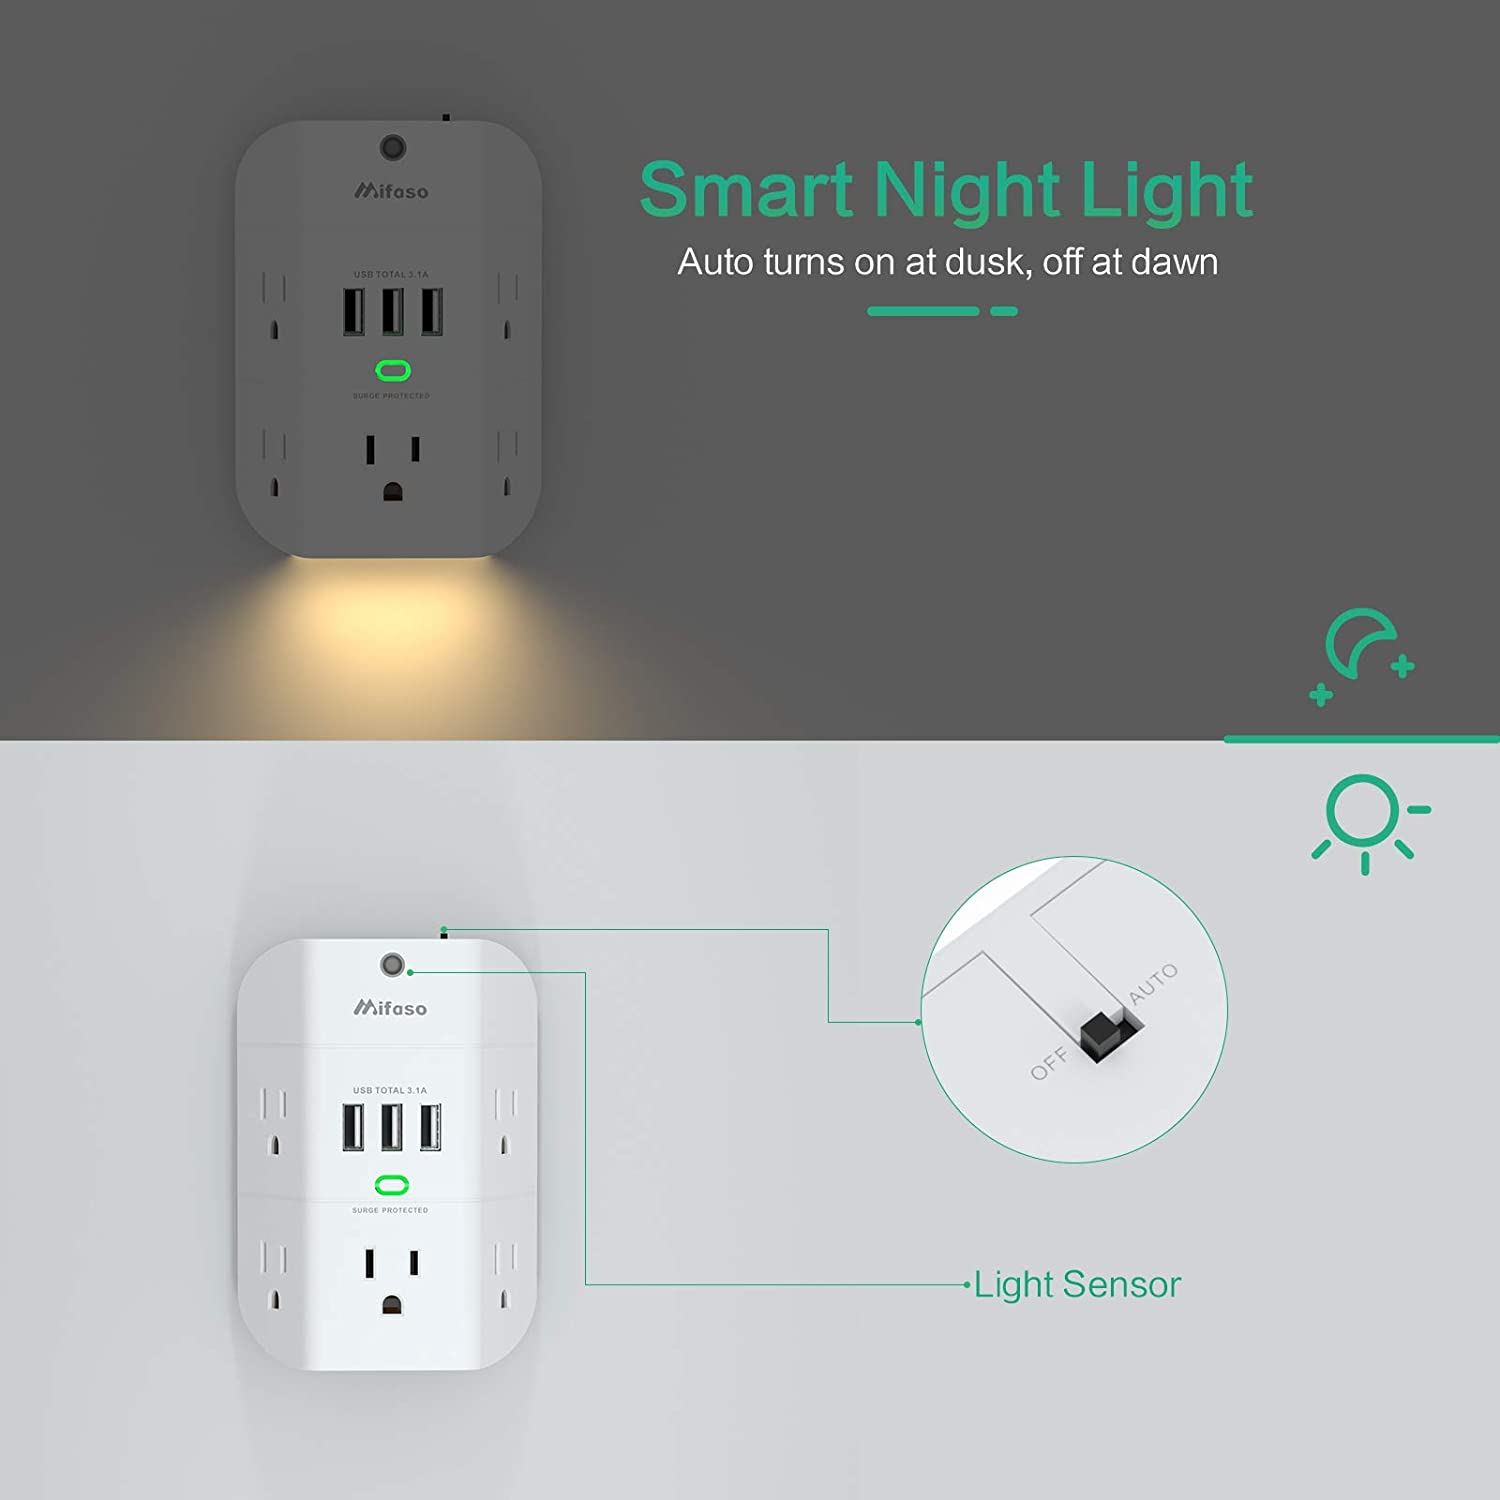 Outlet Extender with Night Light, 5-Outlet Surge Protector with 3 USB Charging Ports, 1800J Power Strip Multi Plug Outlets Wall Adapter Expander with Spaced Outlets for Home, School, Office